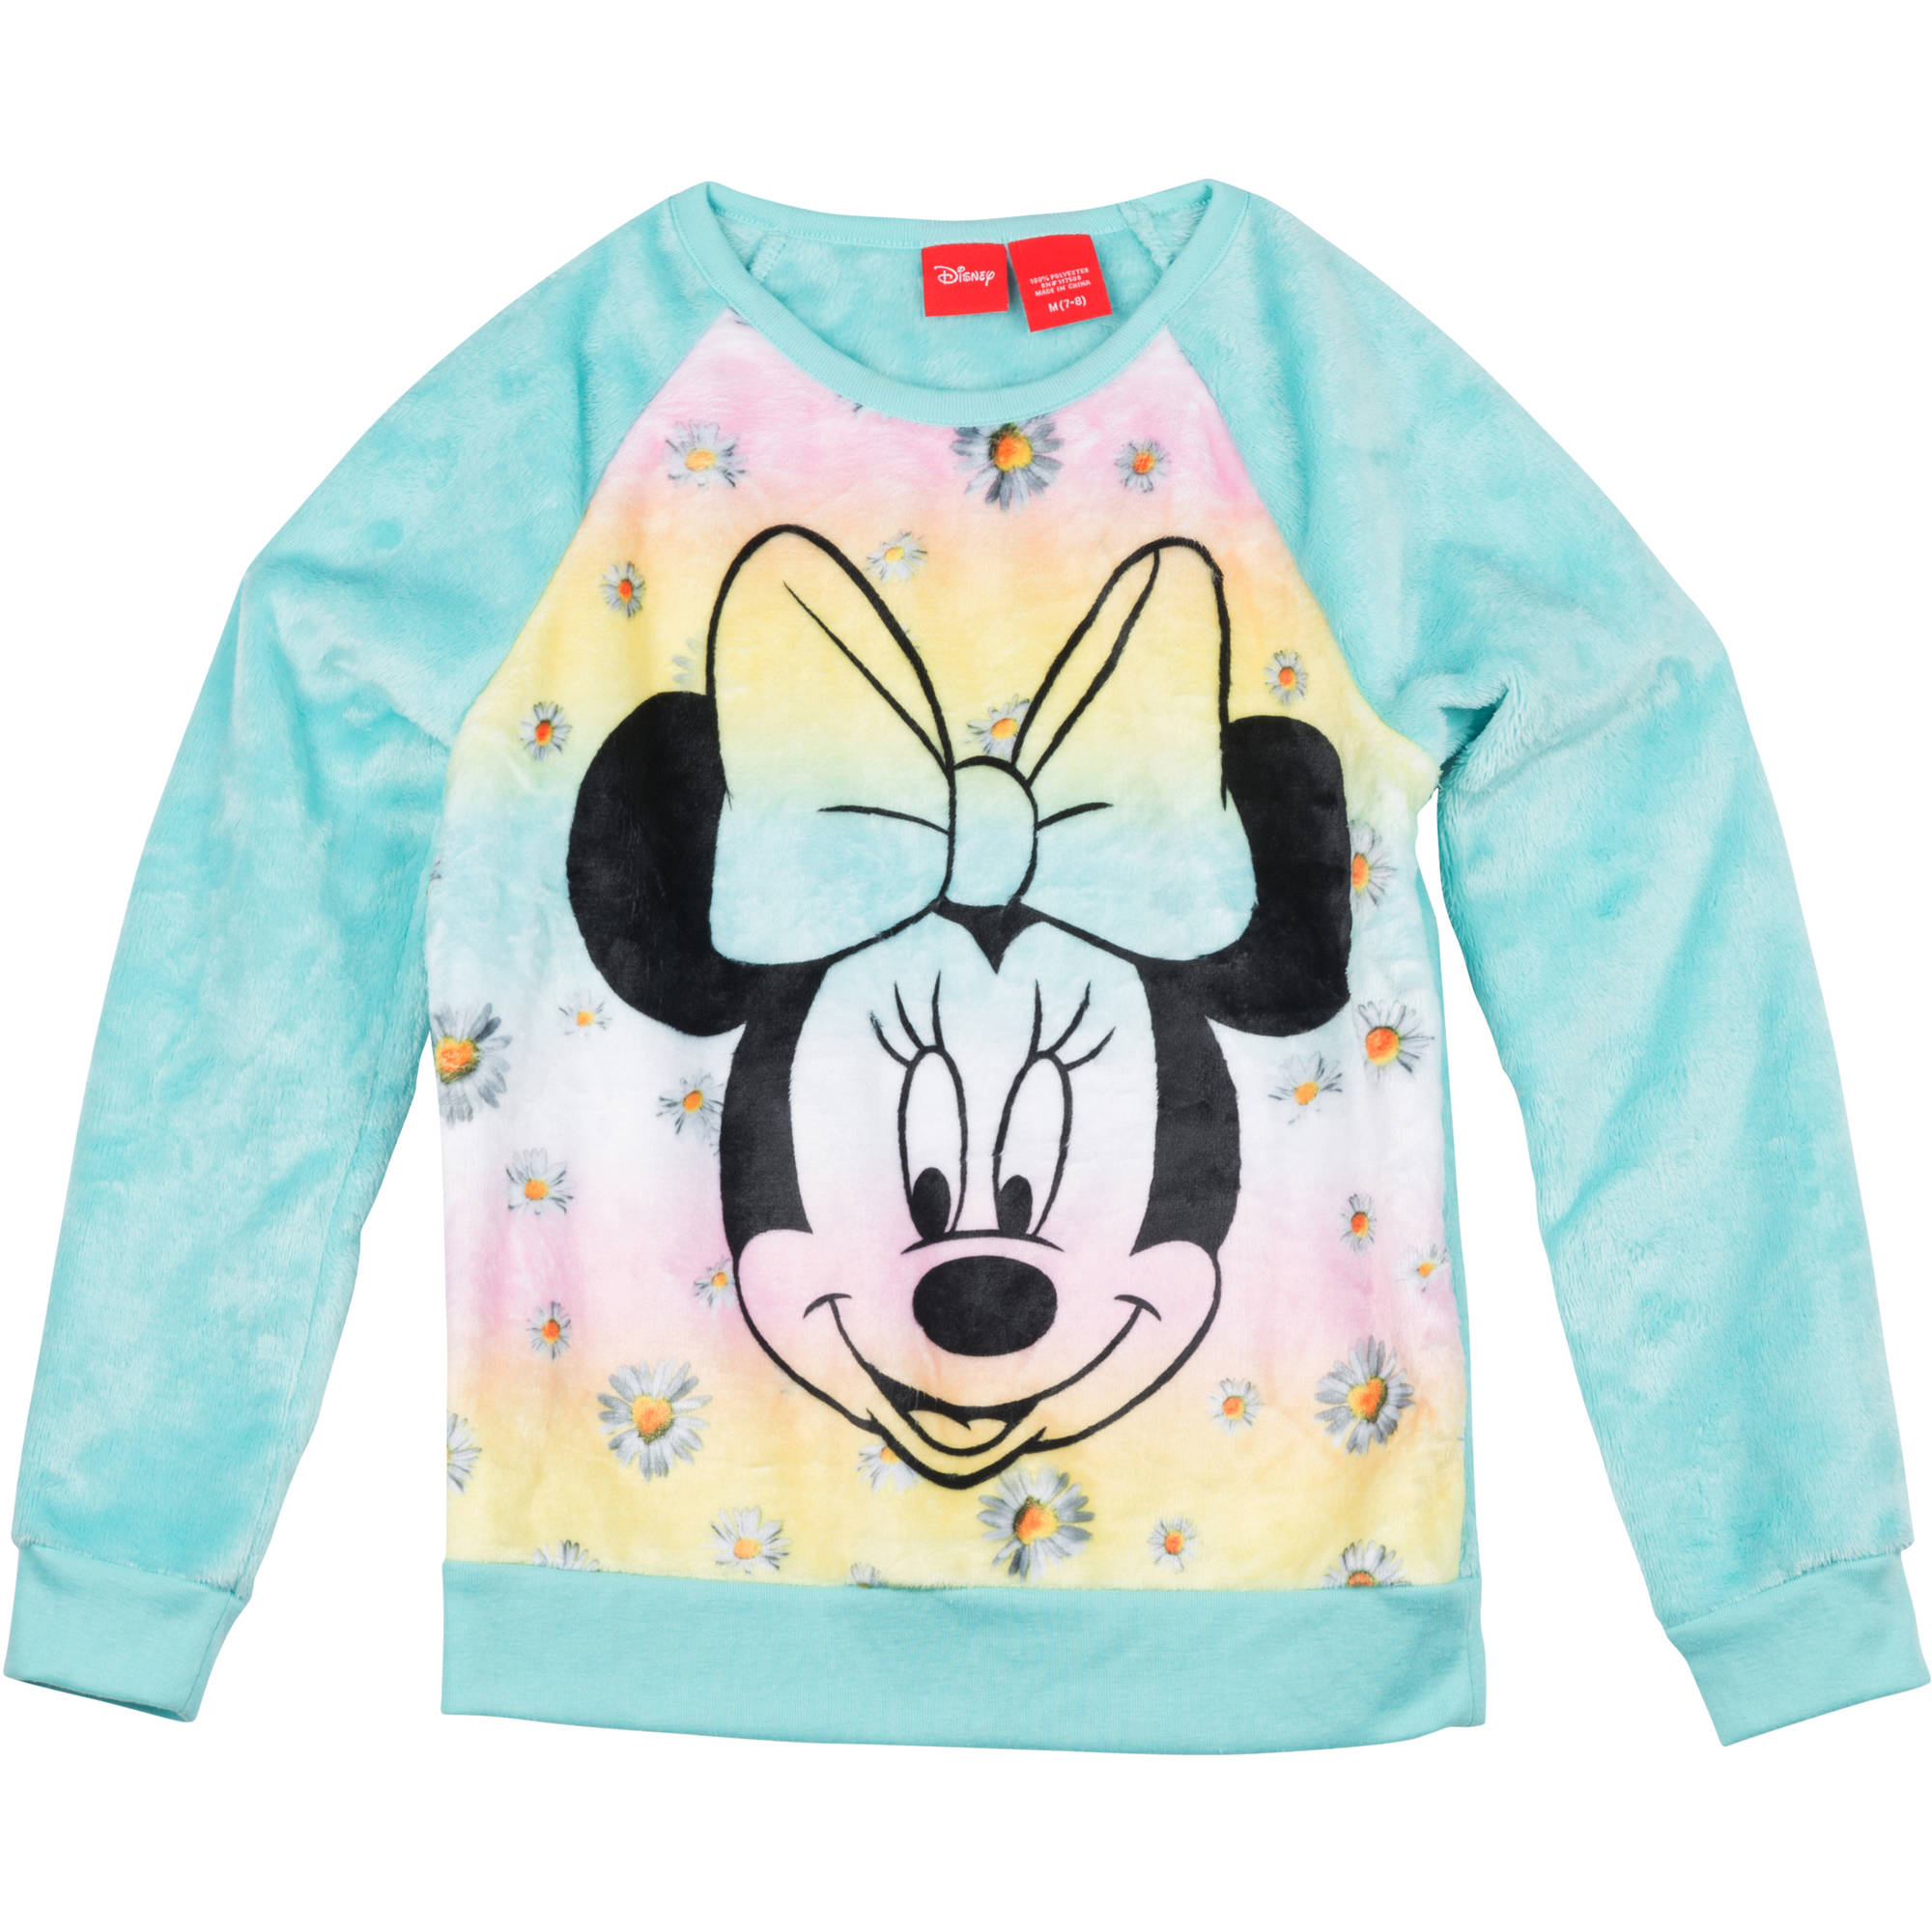 "Minnie Mouse Girls' Printed Fur Sweatshirt ""Minnie Face Sub"""